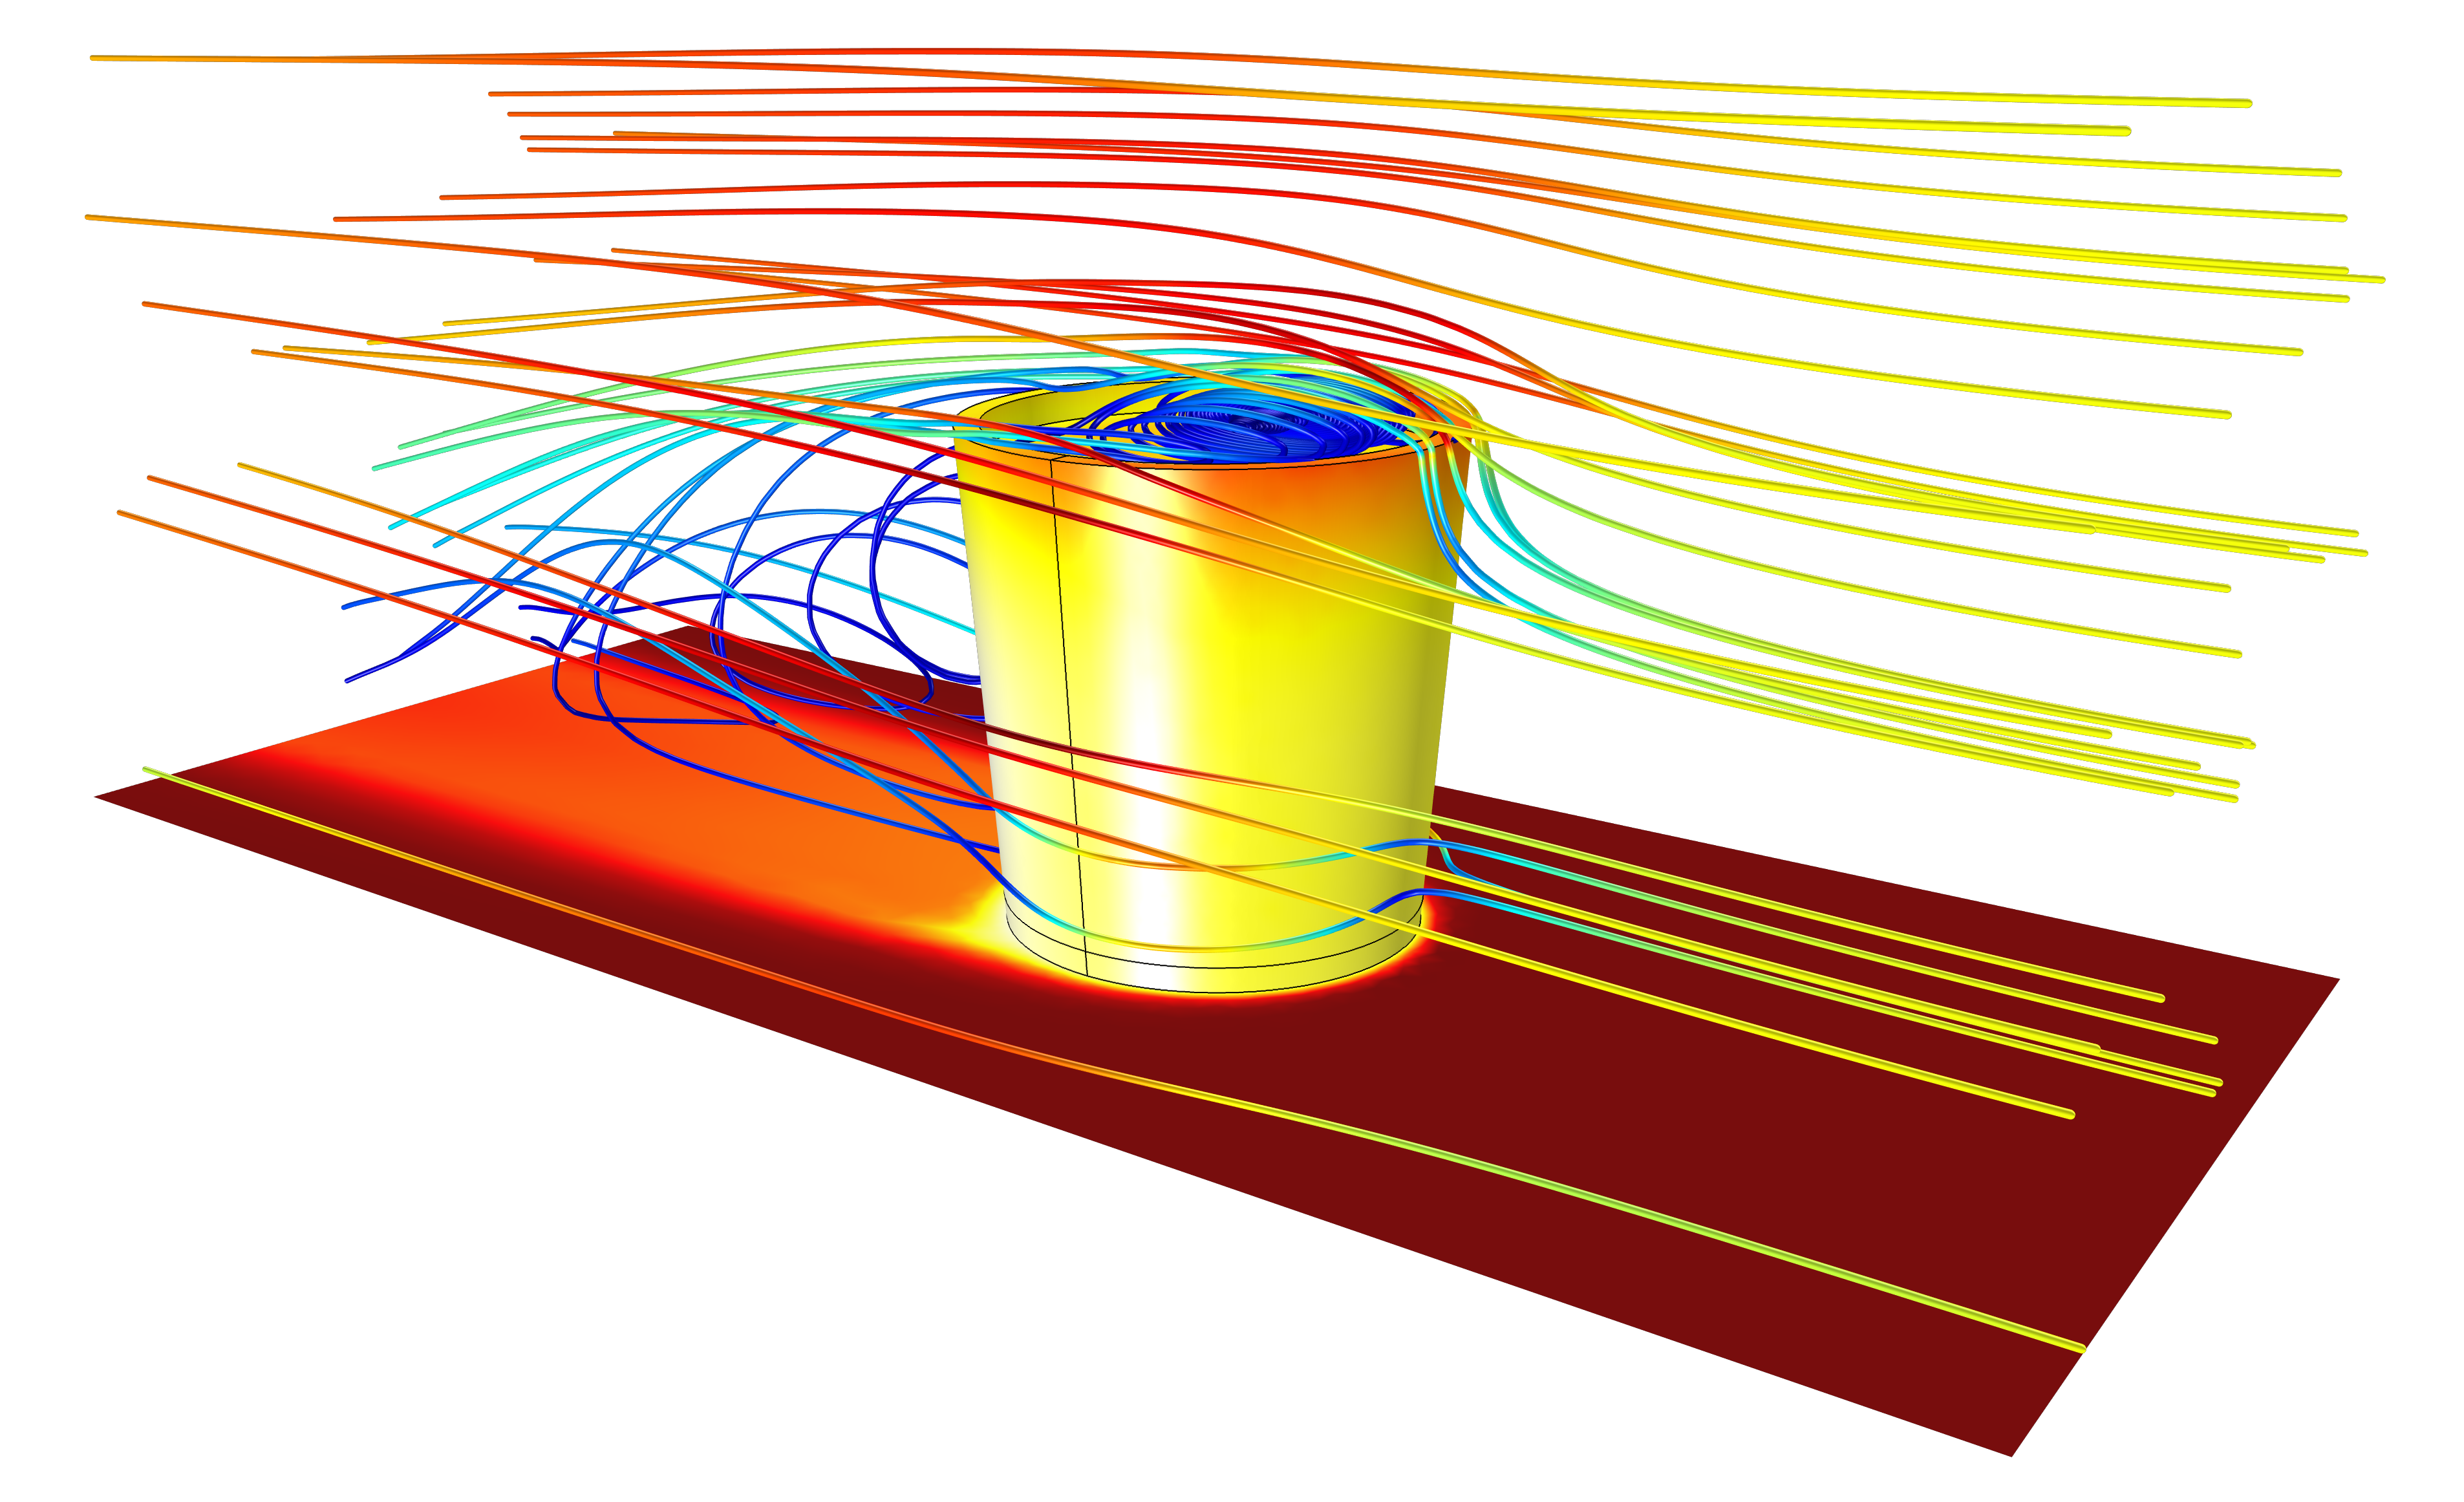 Evaporative Cooling Multi Sycle : Image gallery comsol multiphysics version